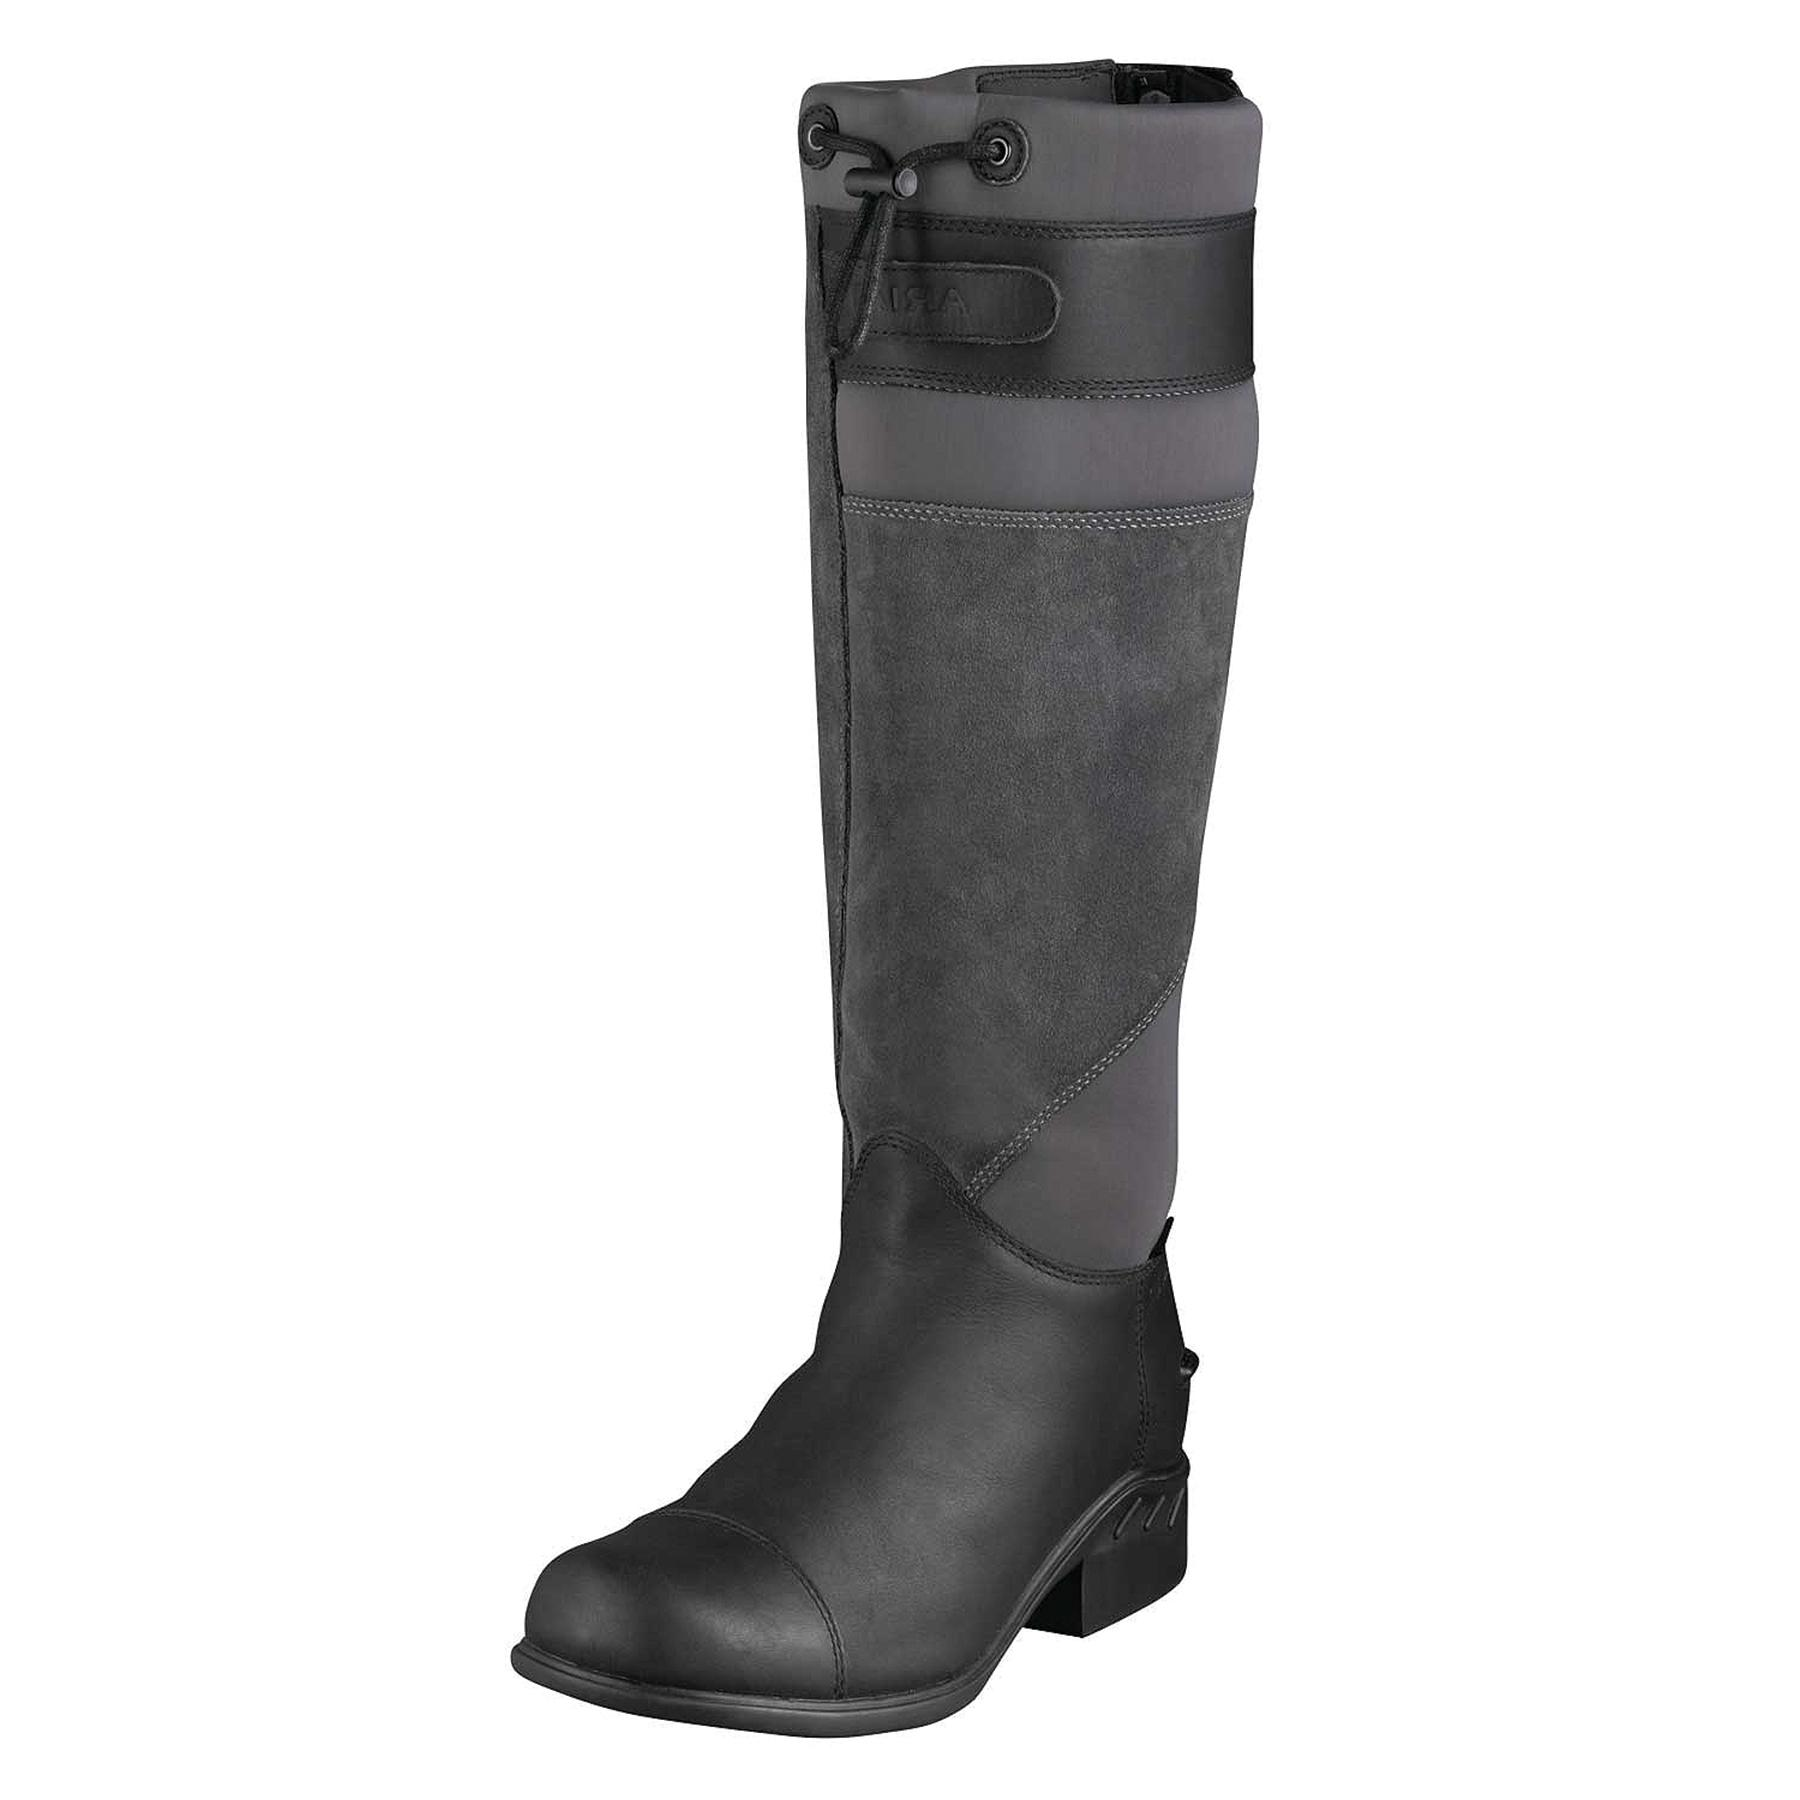 Ariat Winter Boots xfPNU7Nz